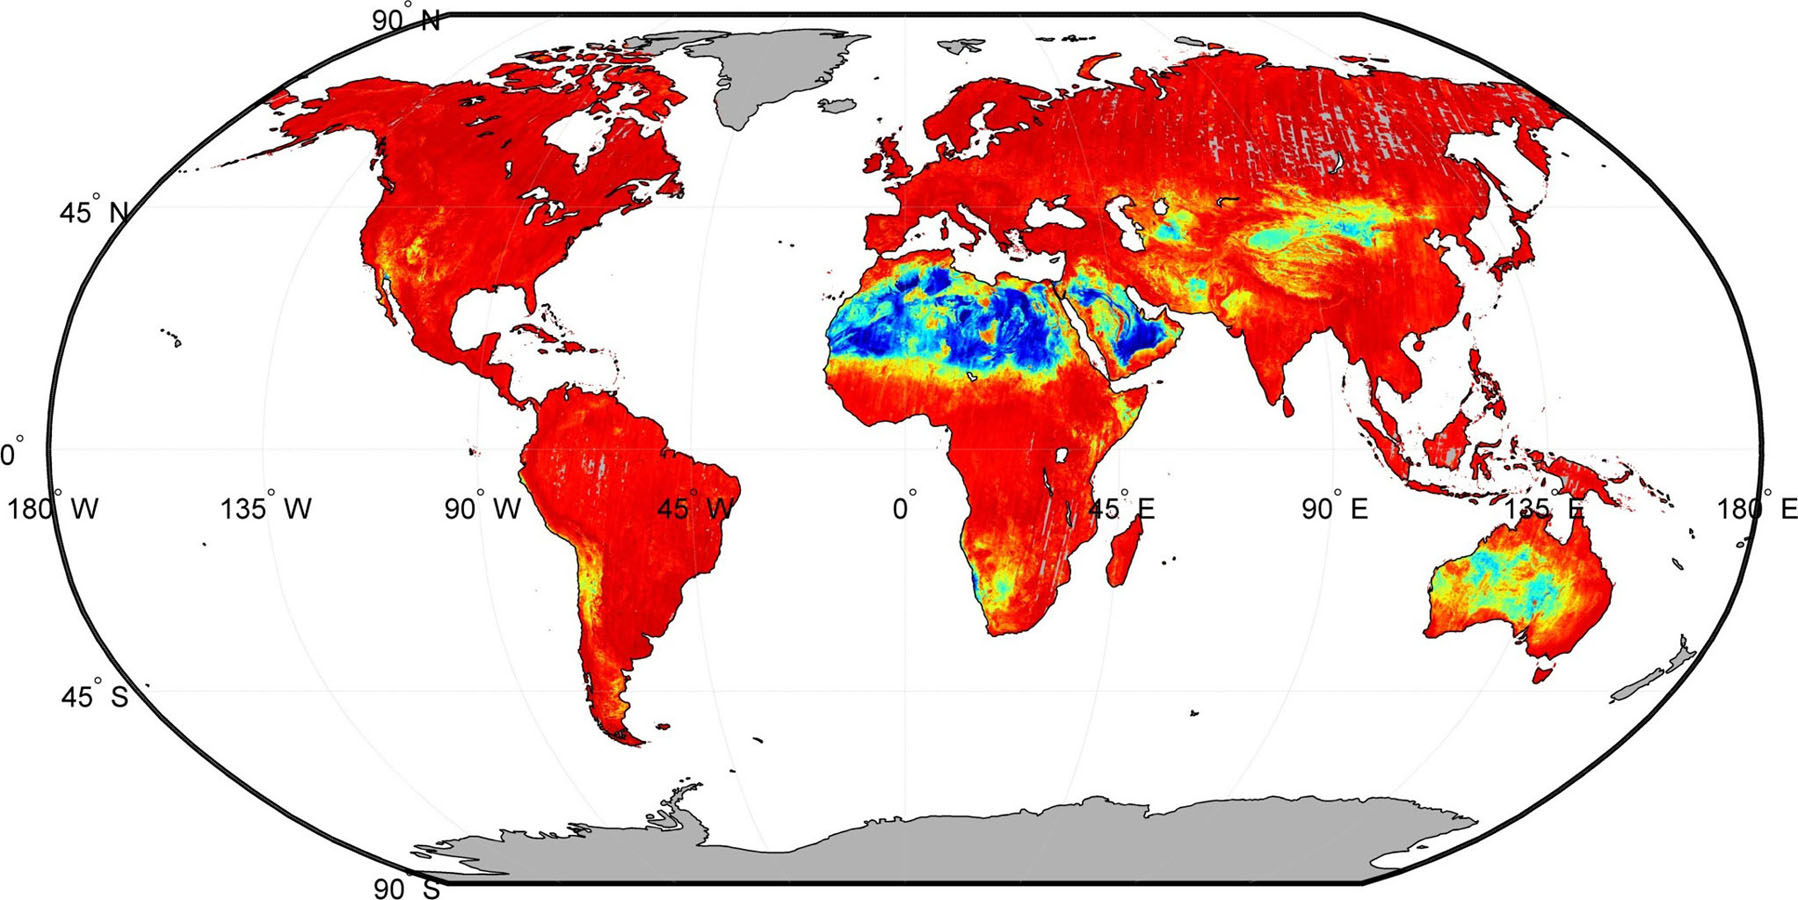 Space Images Nasa Spacecraft Maps Earth S Global Emissivity